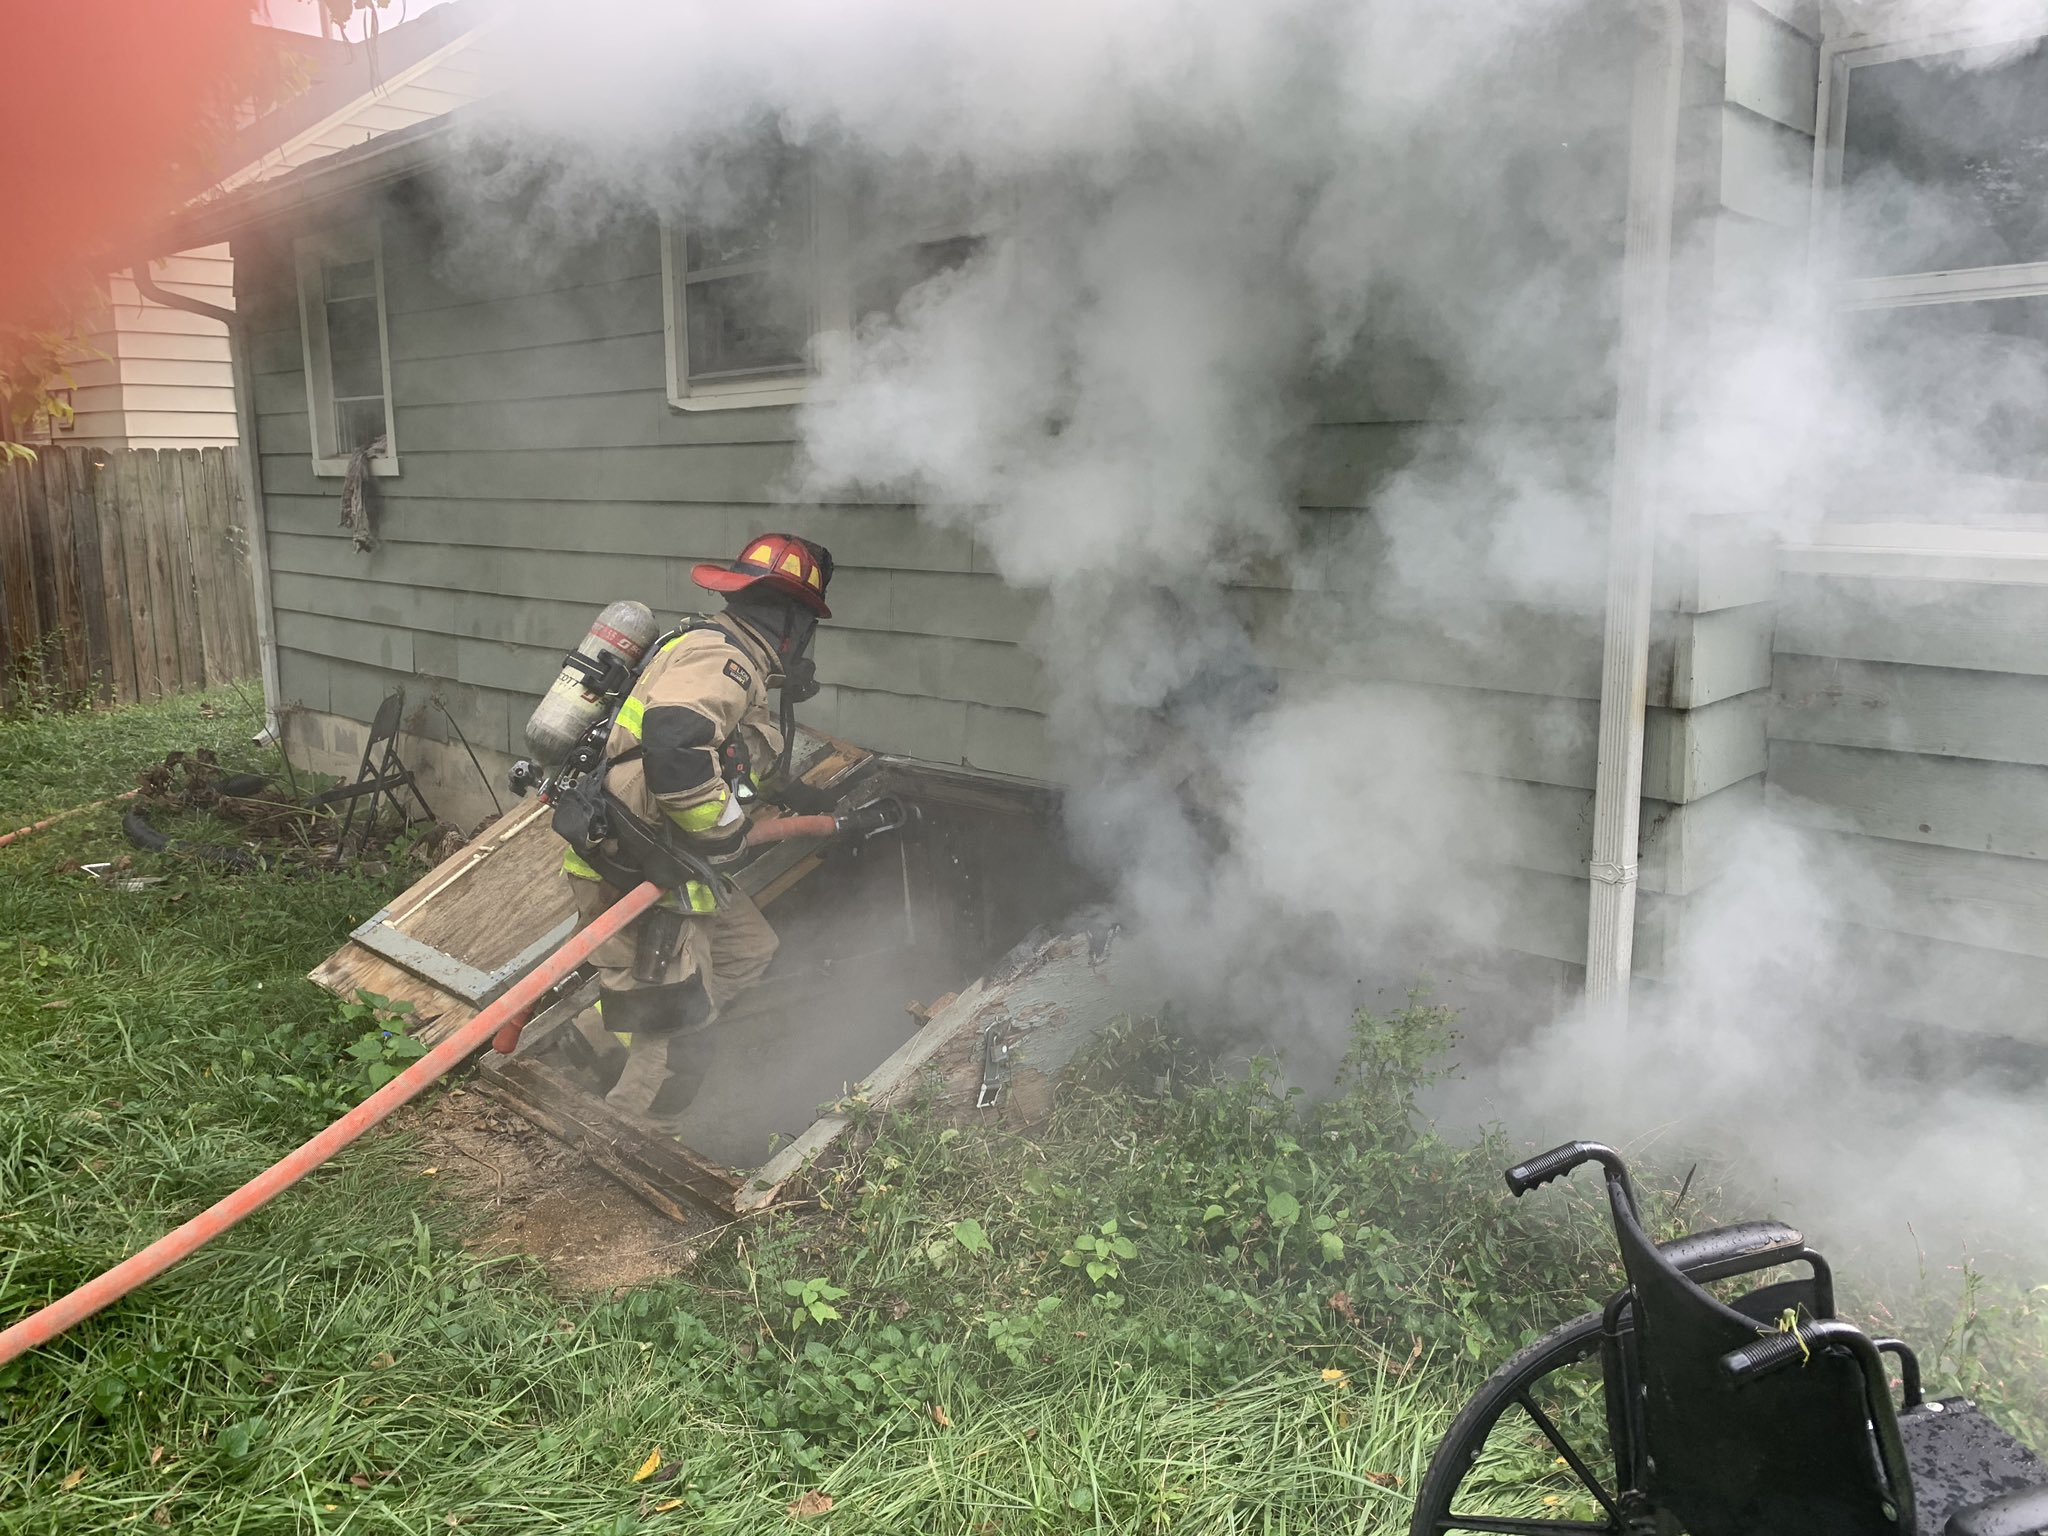 Columbia firefighters respond to a residential structure fire on Pannell Street Monday, Sept. 7.